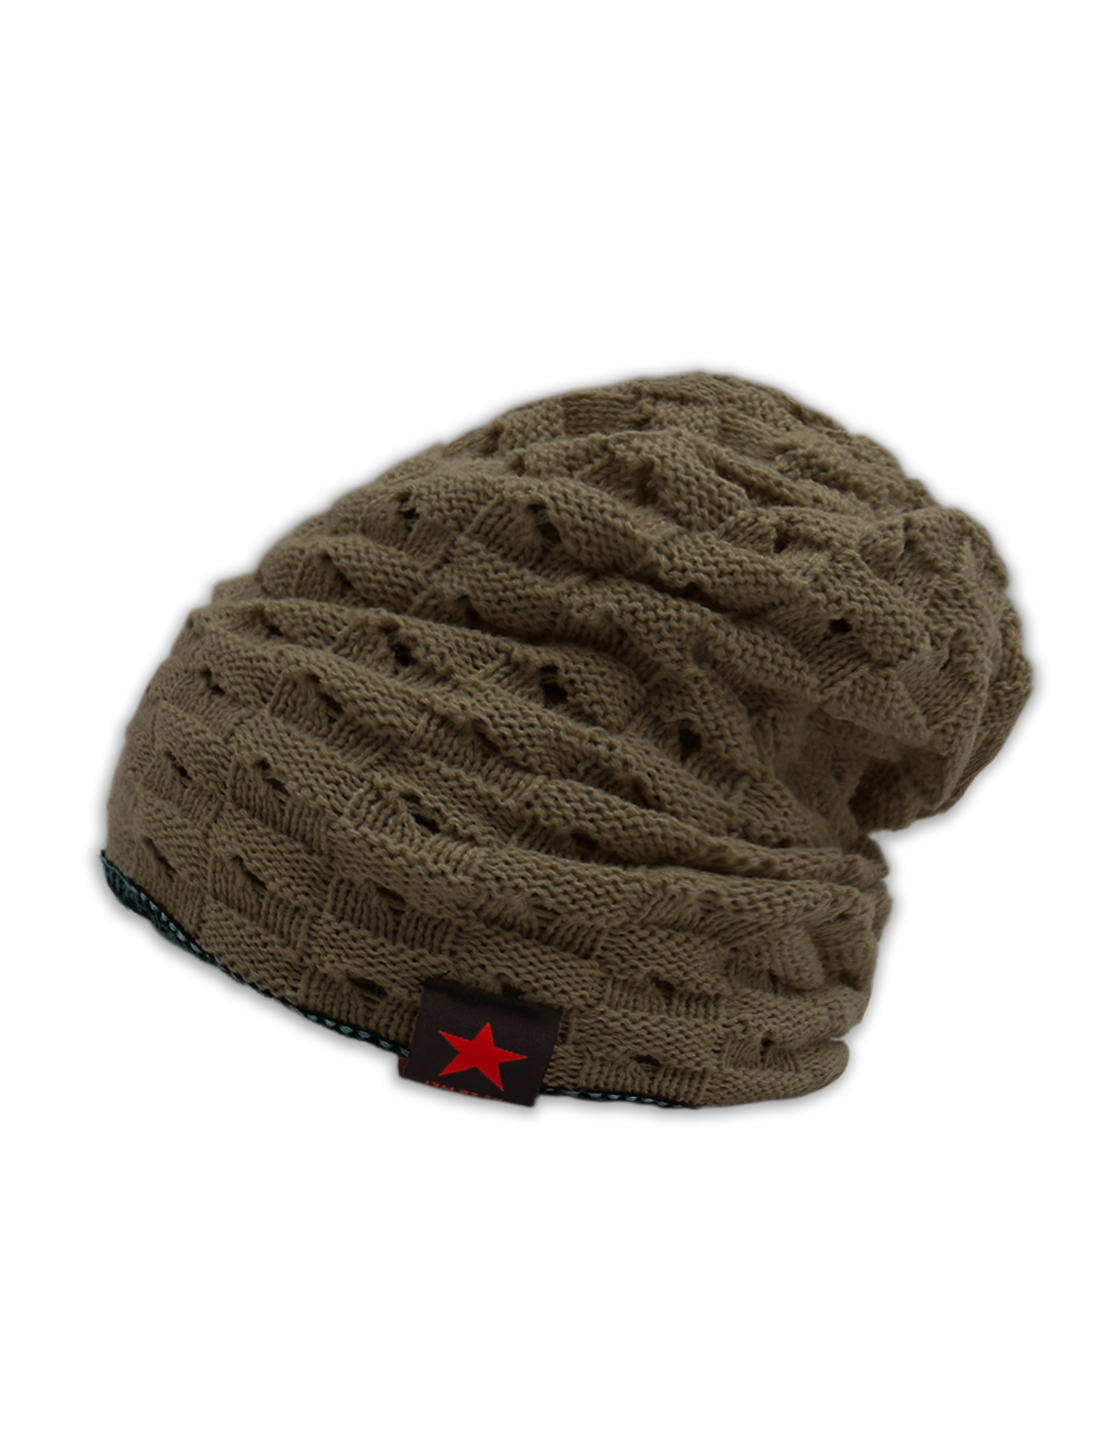 Unisex Hollow Out Design Reversible Knitted Beanie Hat Brown